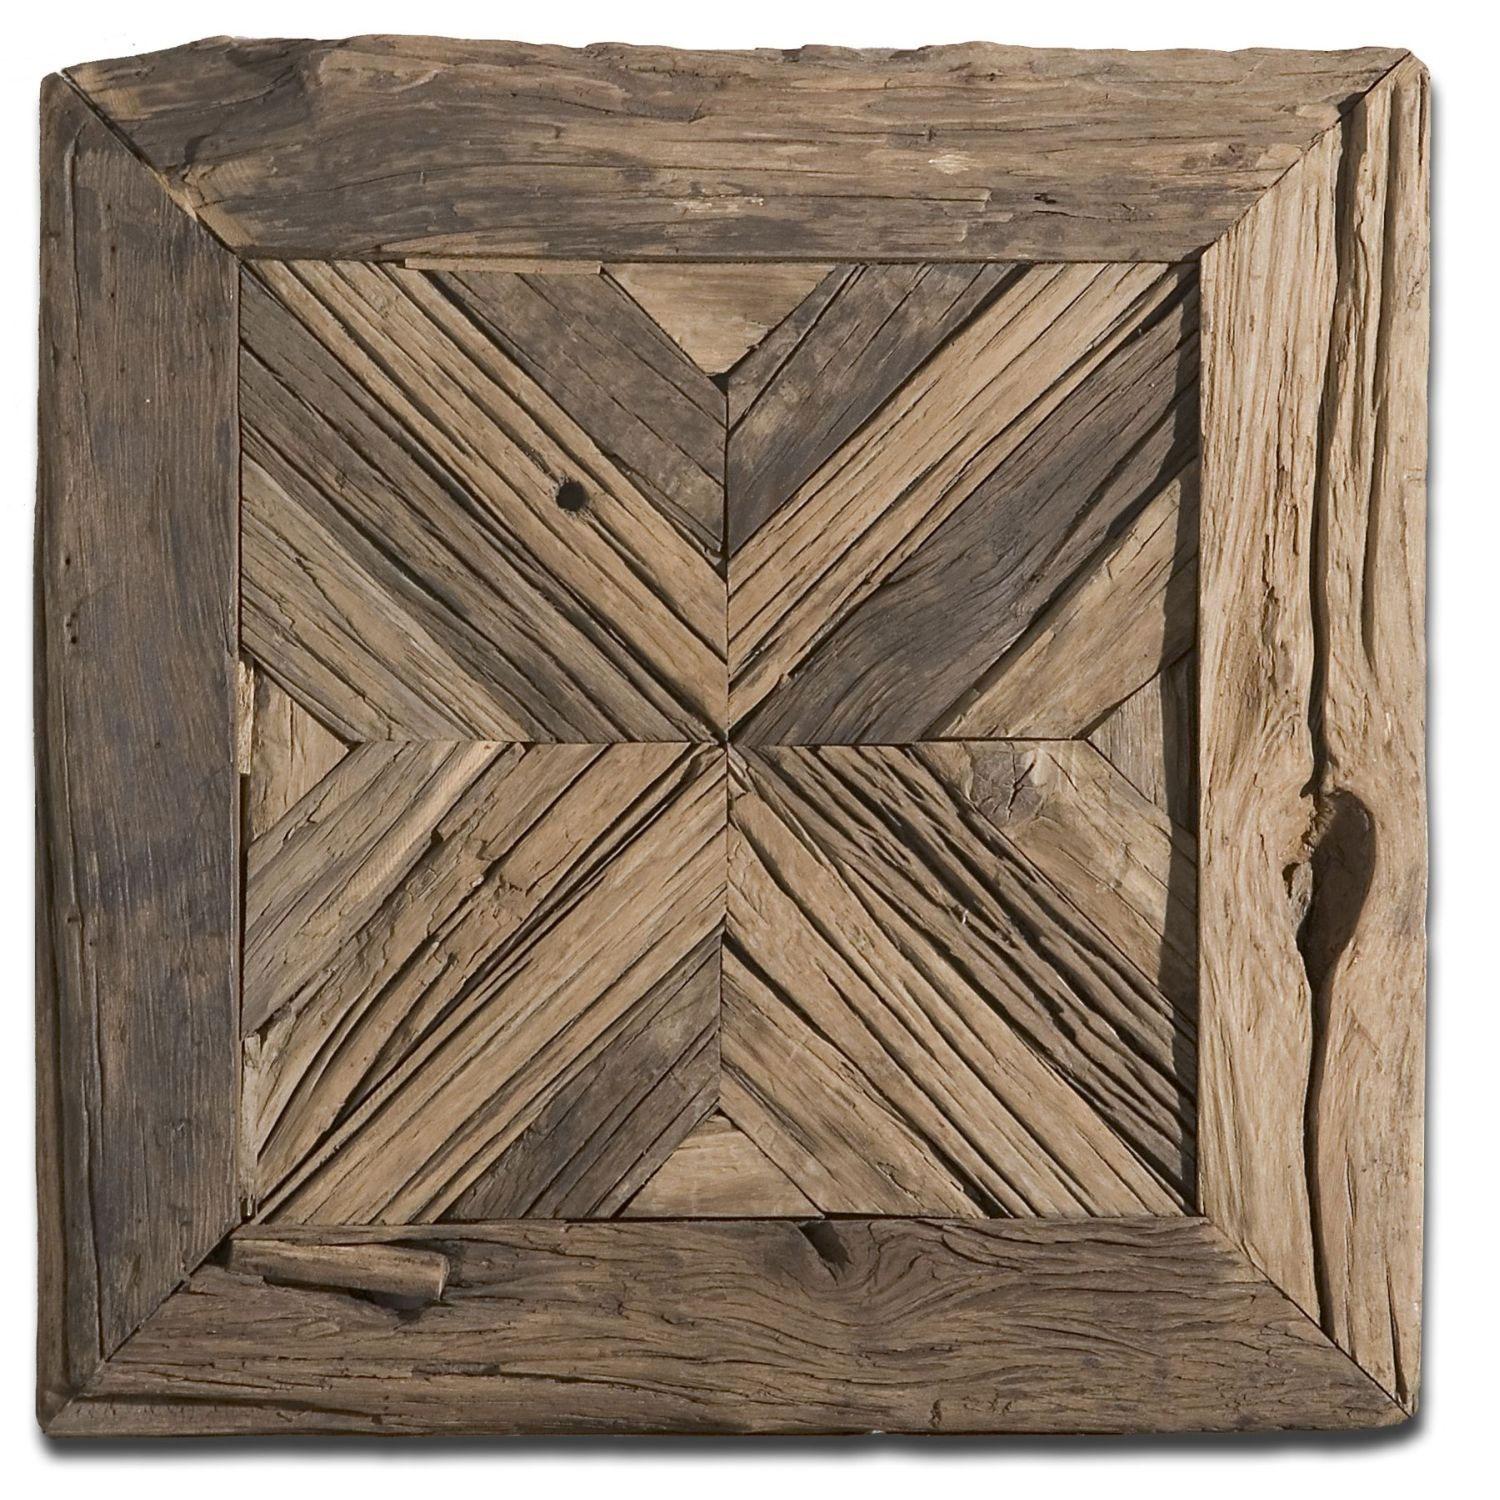 Uttermost Rennick Rustic Wood Wall Art 04014 | Bellacor Intended For Wood Medallion Wall Art (View 18 of 20)